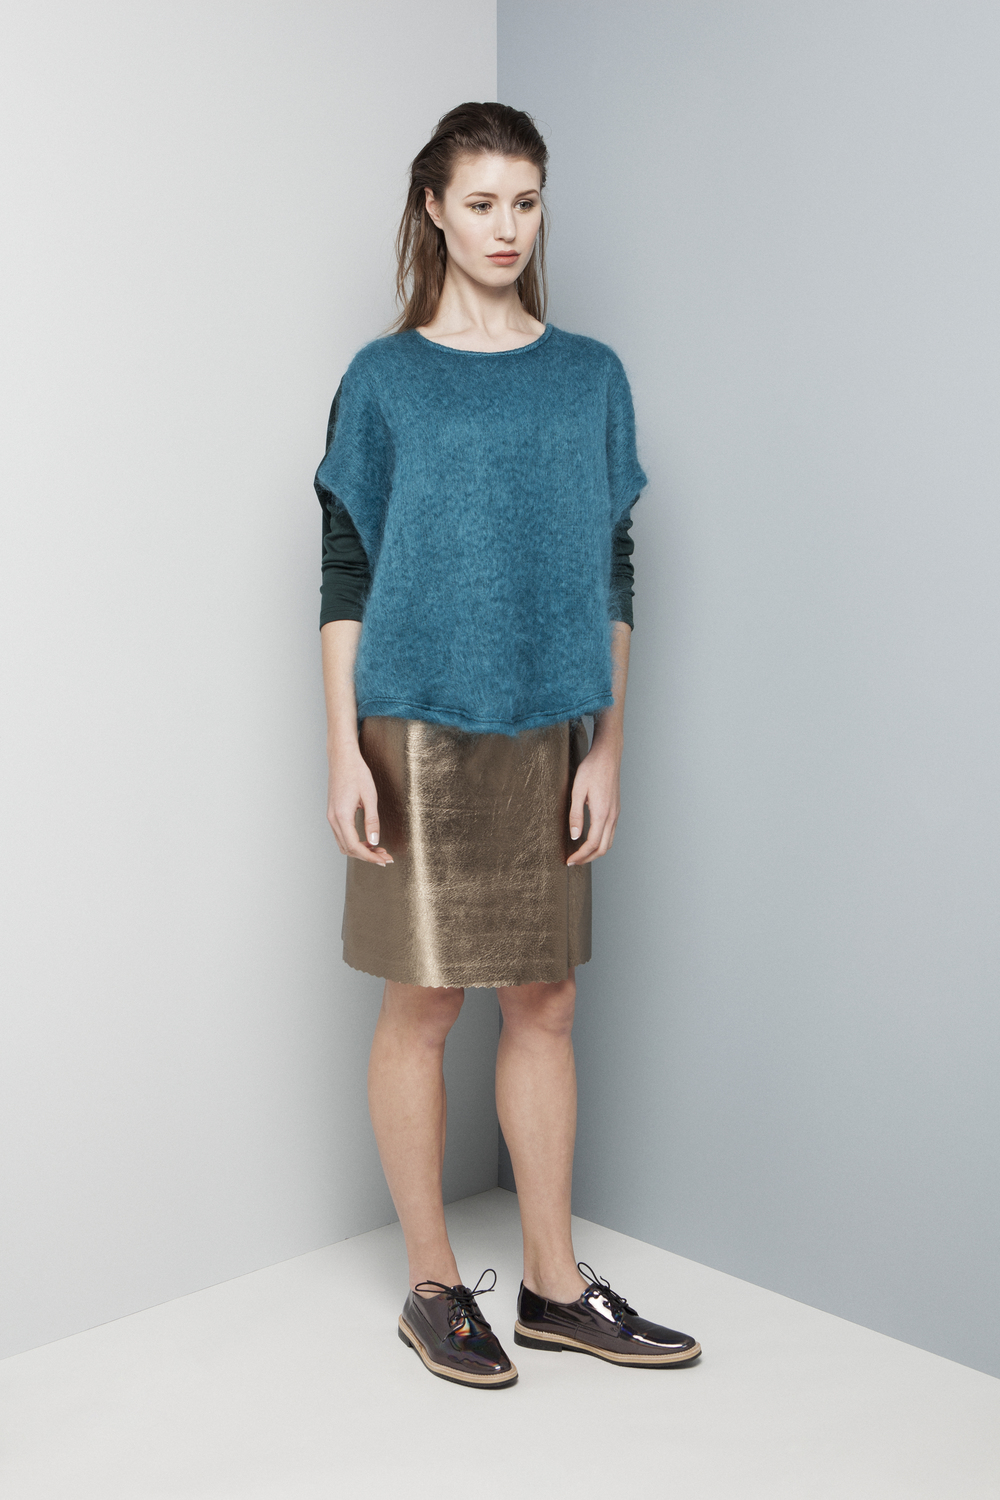 Manley AW14 Rylie Mohair Jumper (teal) €240 and Rylie Metallic Skirt (pewter) €286.jpg